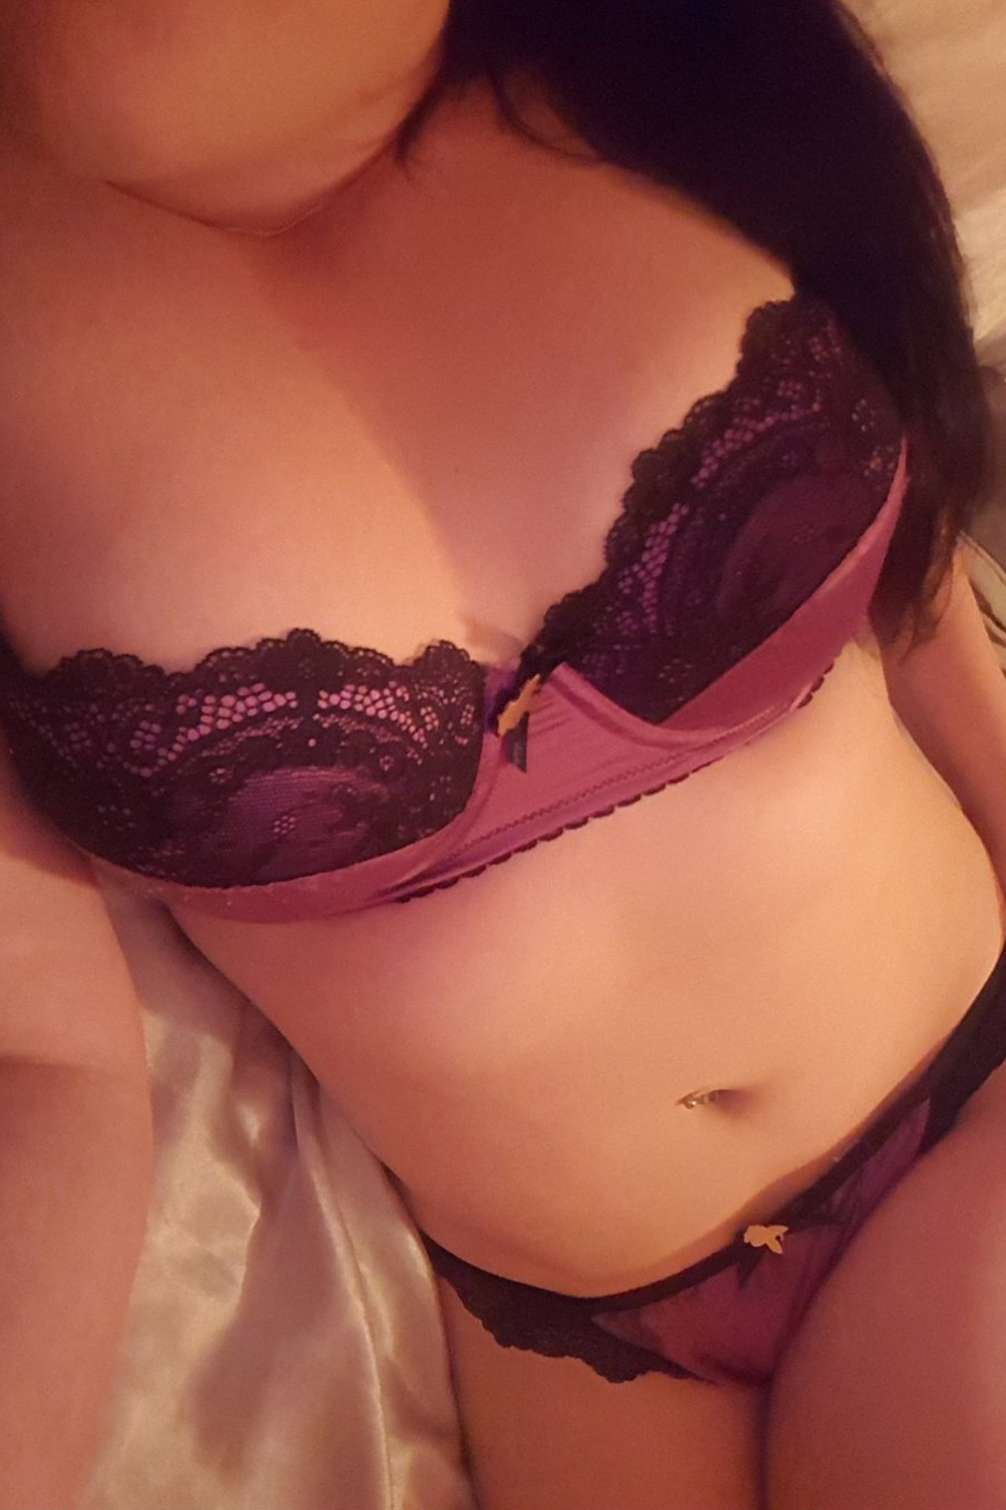 bianca bentley melbourne escort